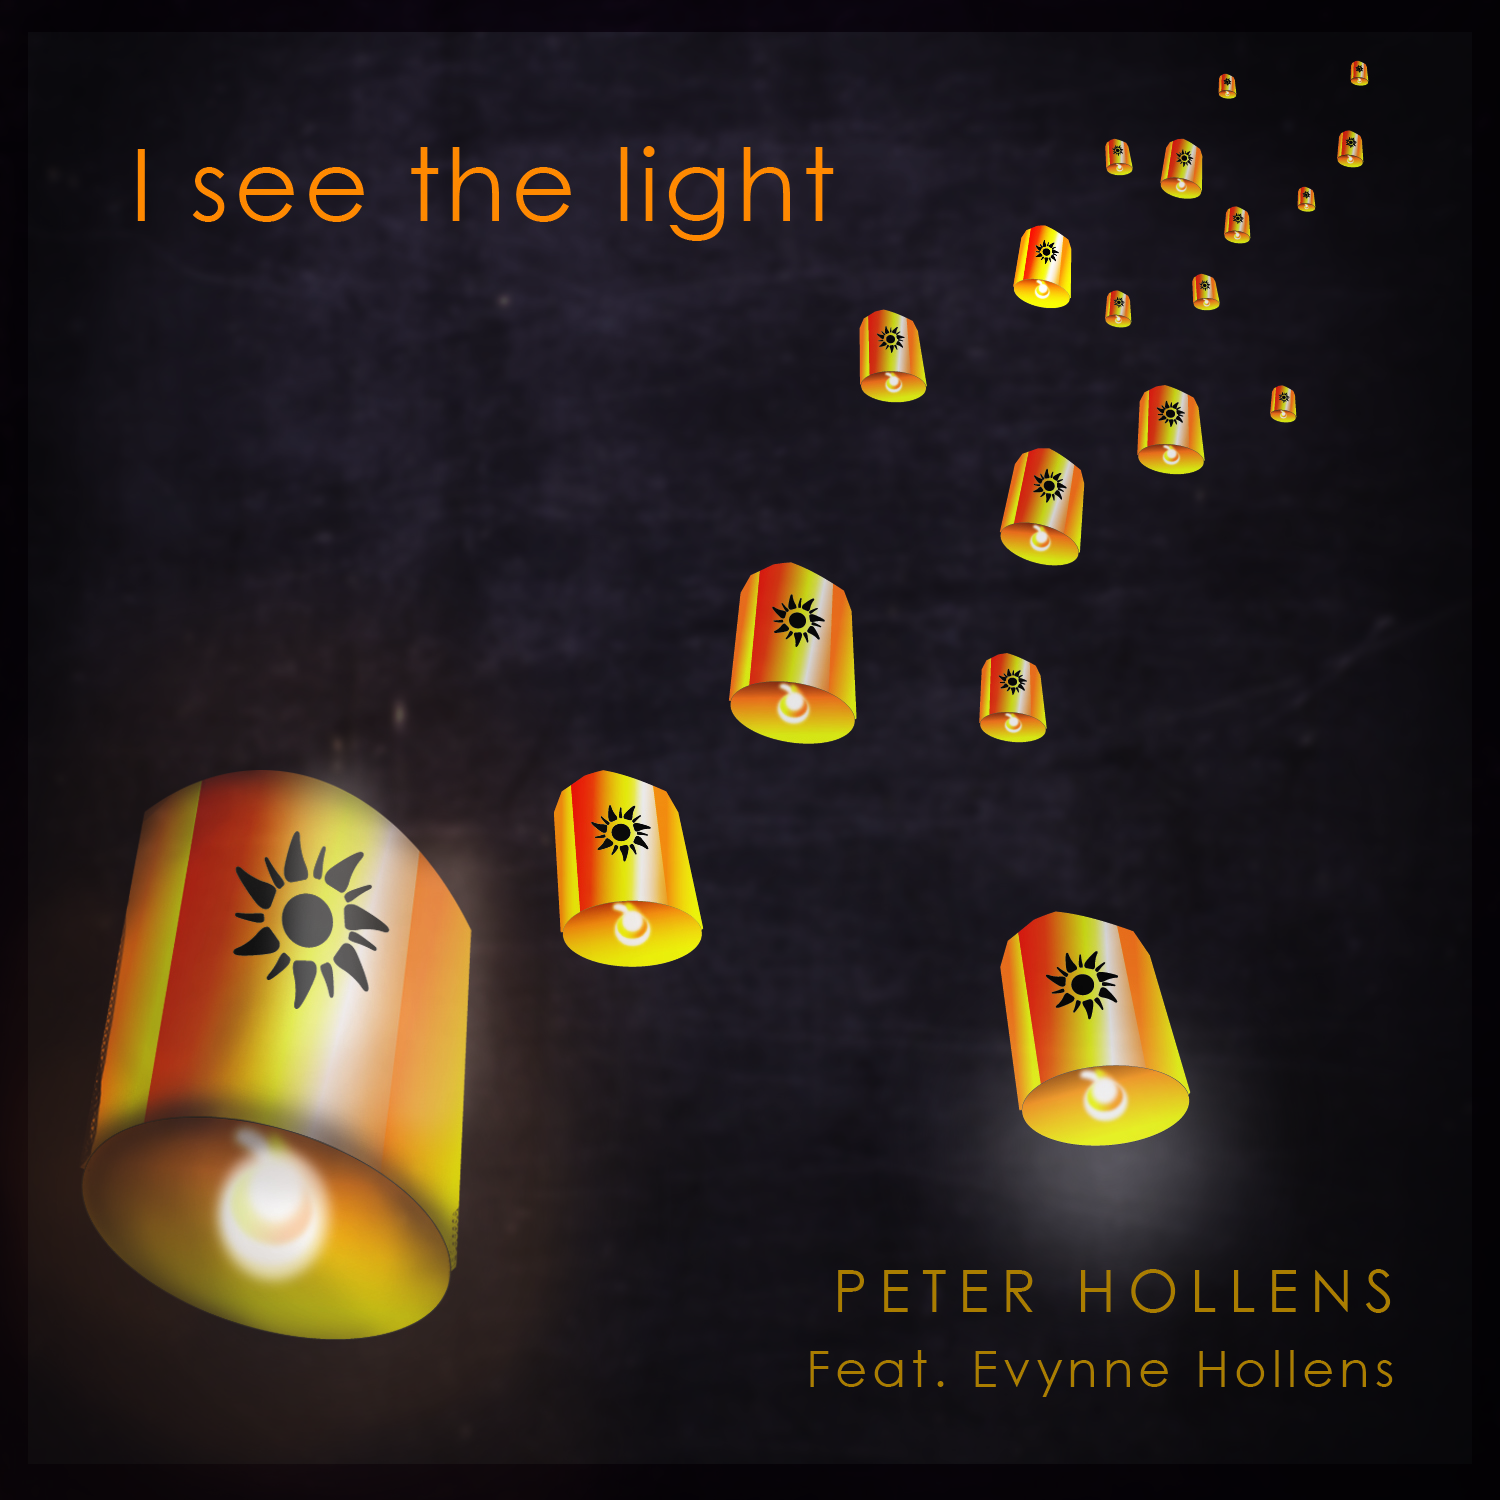 """New Video: Peter Hollens feat. Evynne Hollens """"I See The Light"""" From Disney's Tangled Out Now!"""